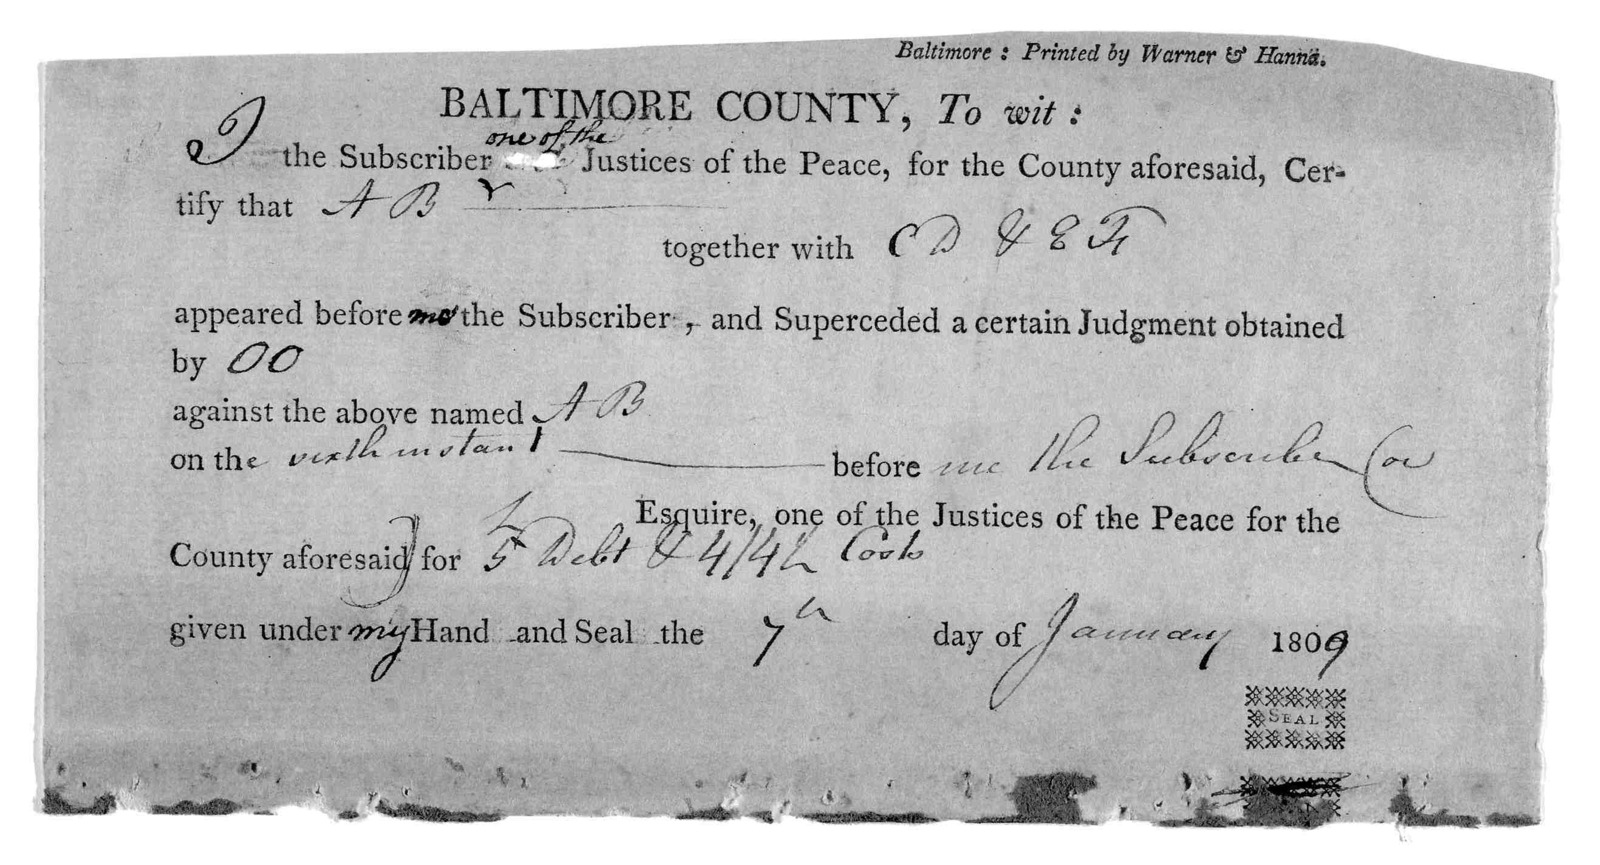 Baltimore County, to wit: the subscriber [blank] justices of the peace, for the County aforesaid certify that [blank] together with [blank] appeared before [blank] the subscriber, and superceded a certain judgment obtained by [blank] against abo